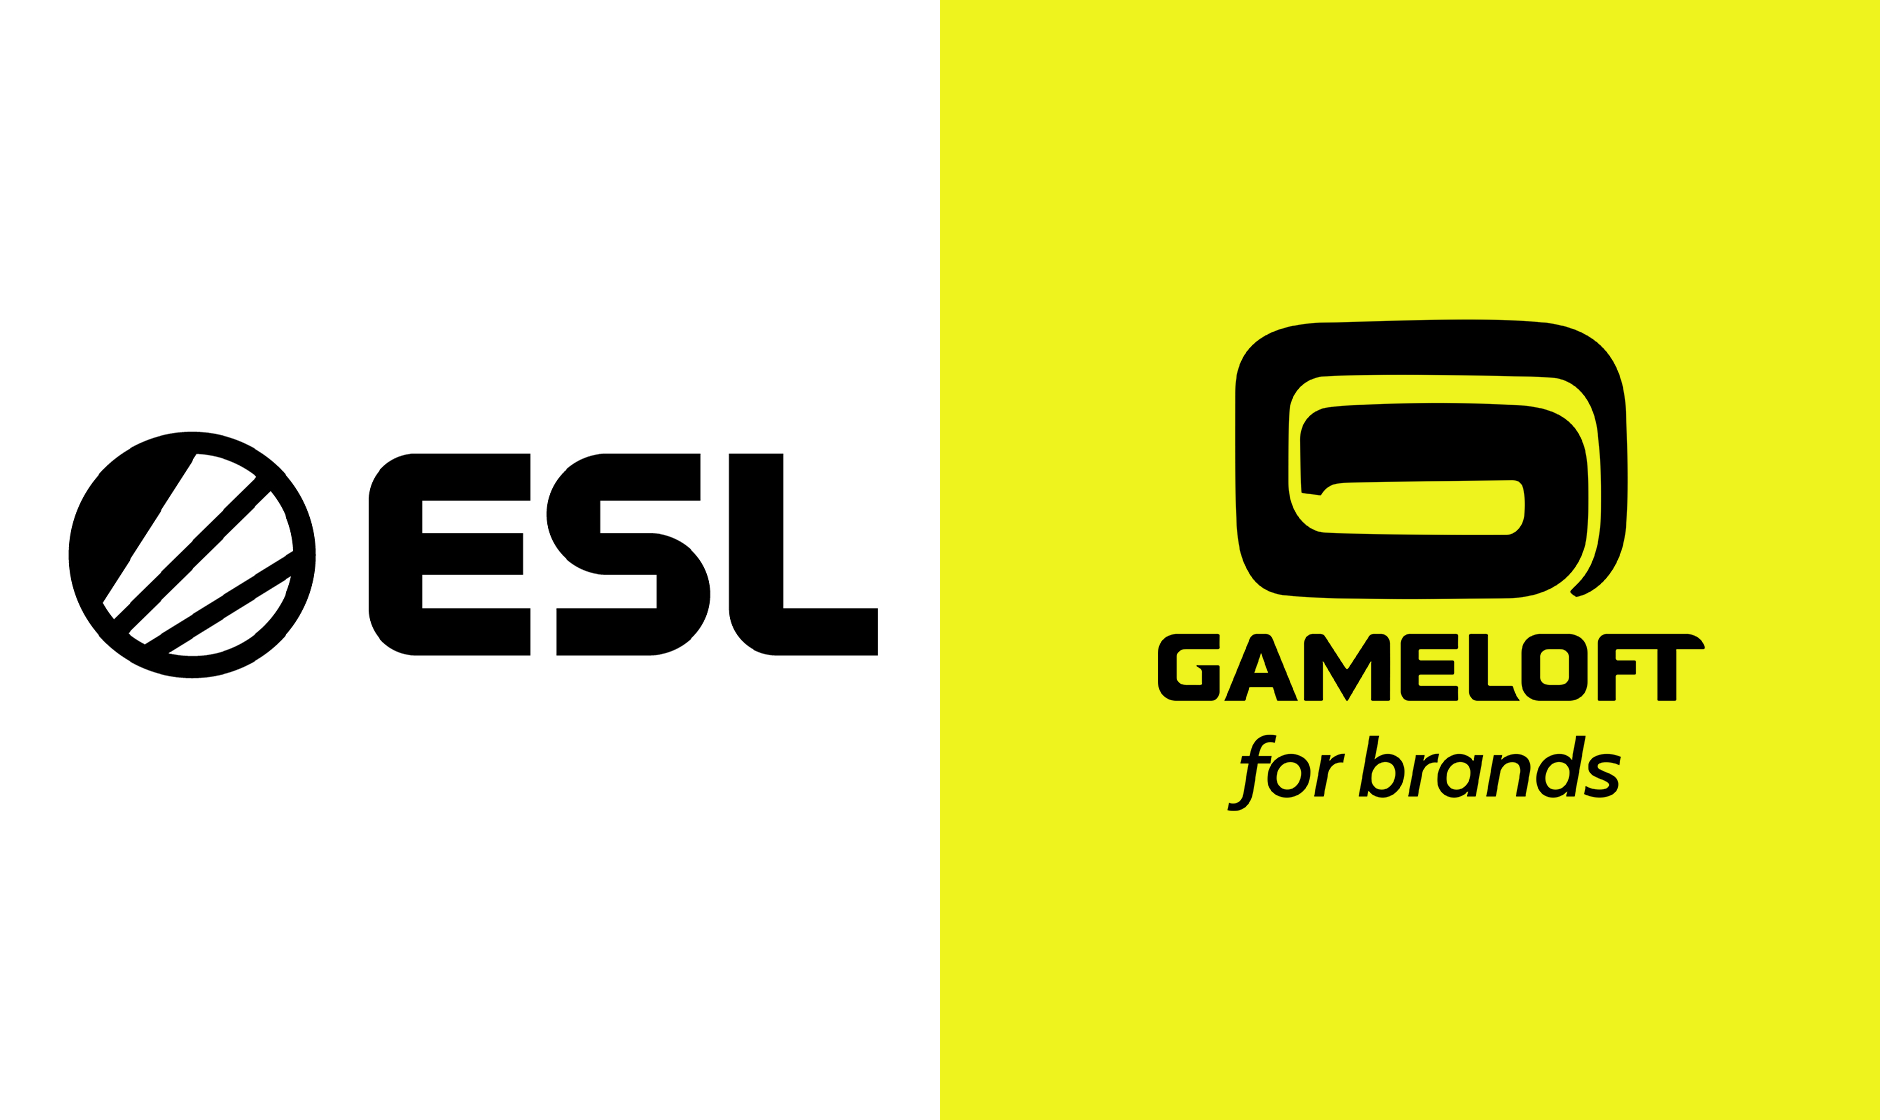 ESL Gaming partners with Gameloft for Brands to improve mobile advertising thumbnail